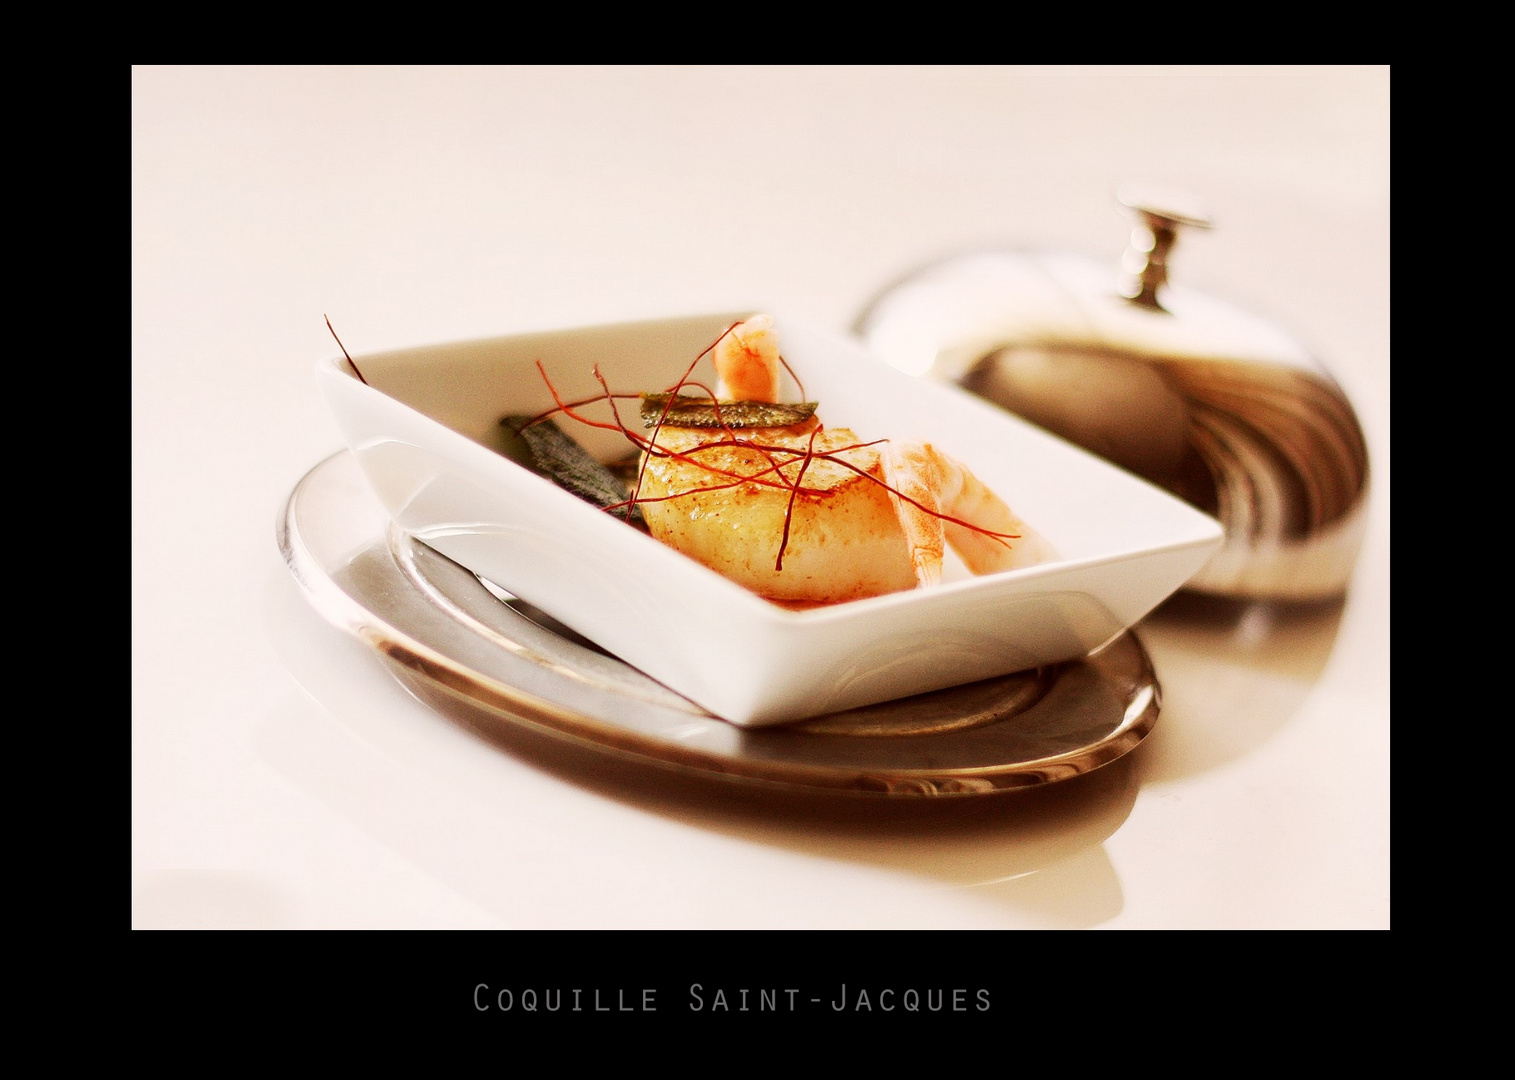 Coquille St. Jacques